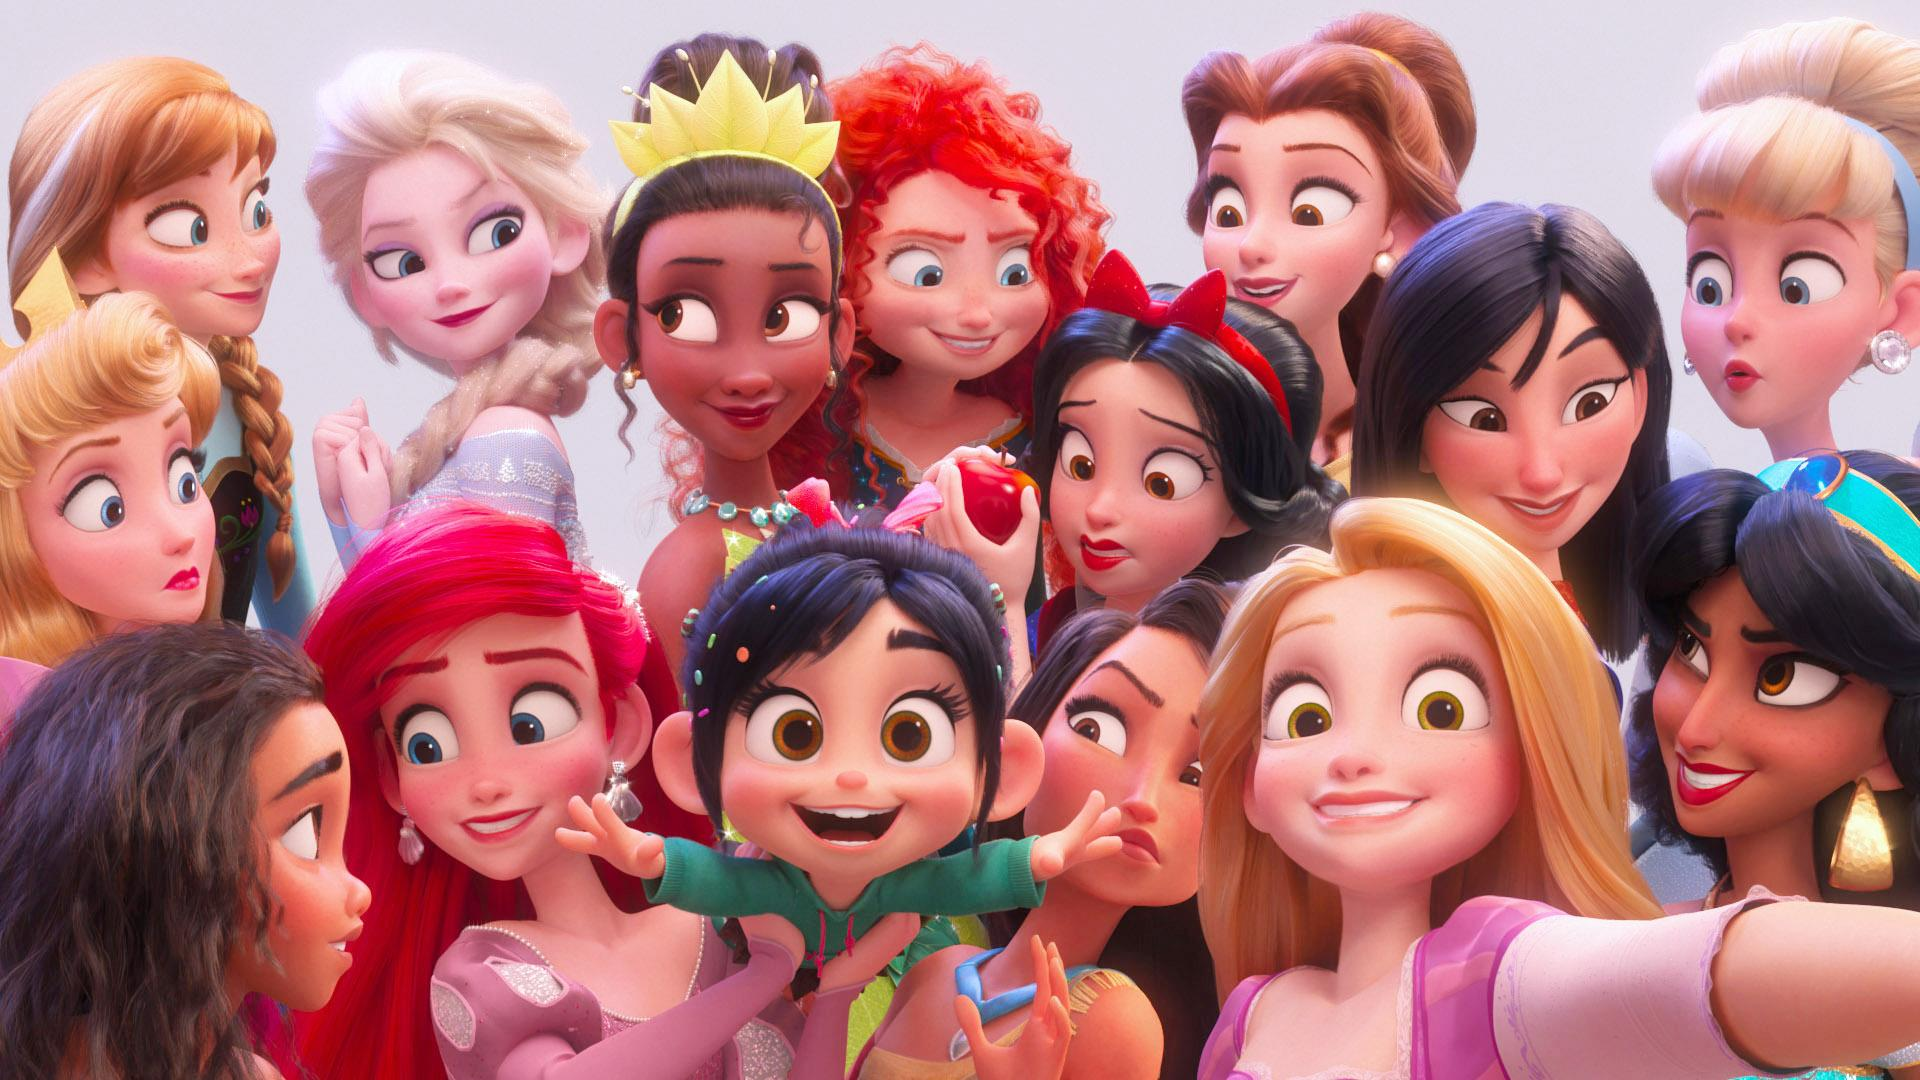 Pocahontas and the other Disney princesses reunite in Ralph Breaks the Internet. (Photo: Walt Disney Studios Motion Pictures / courtesy Everett Collection)